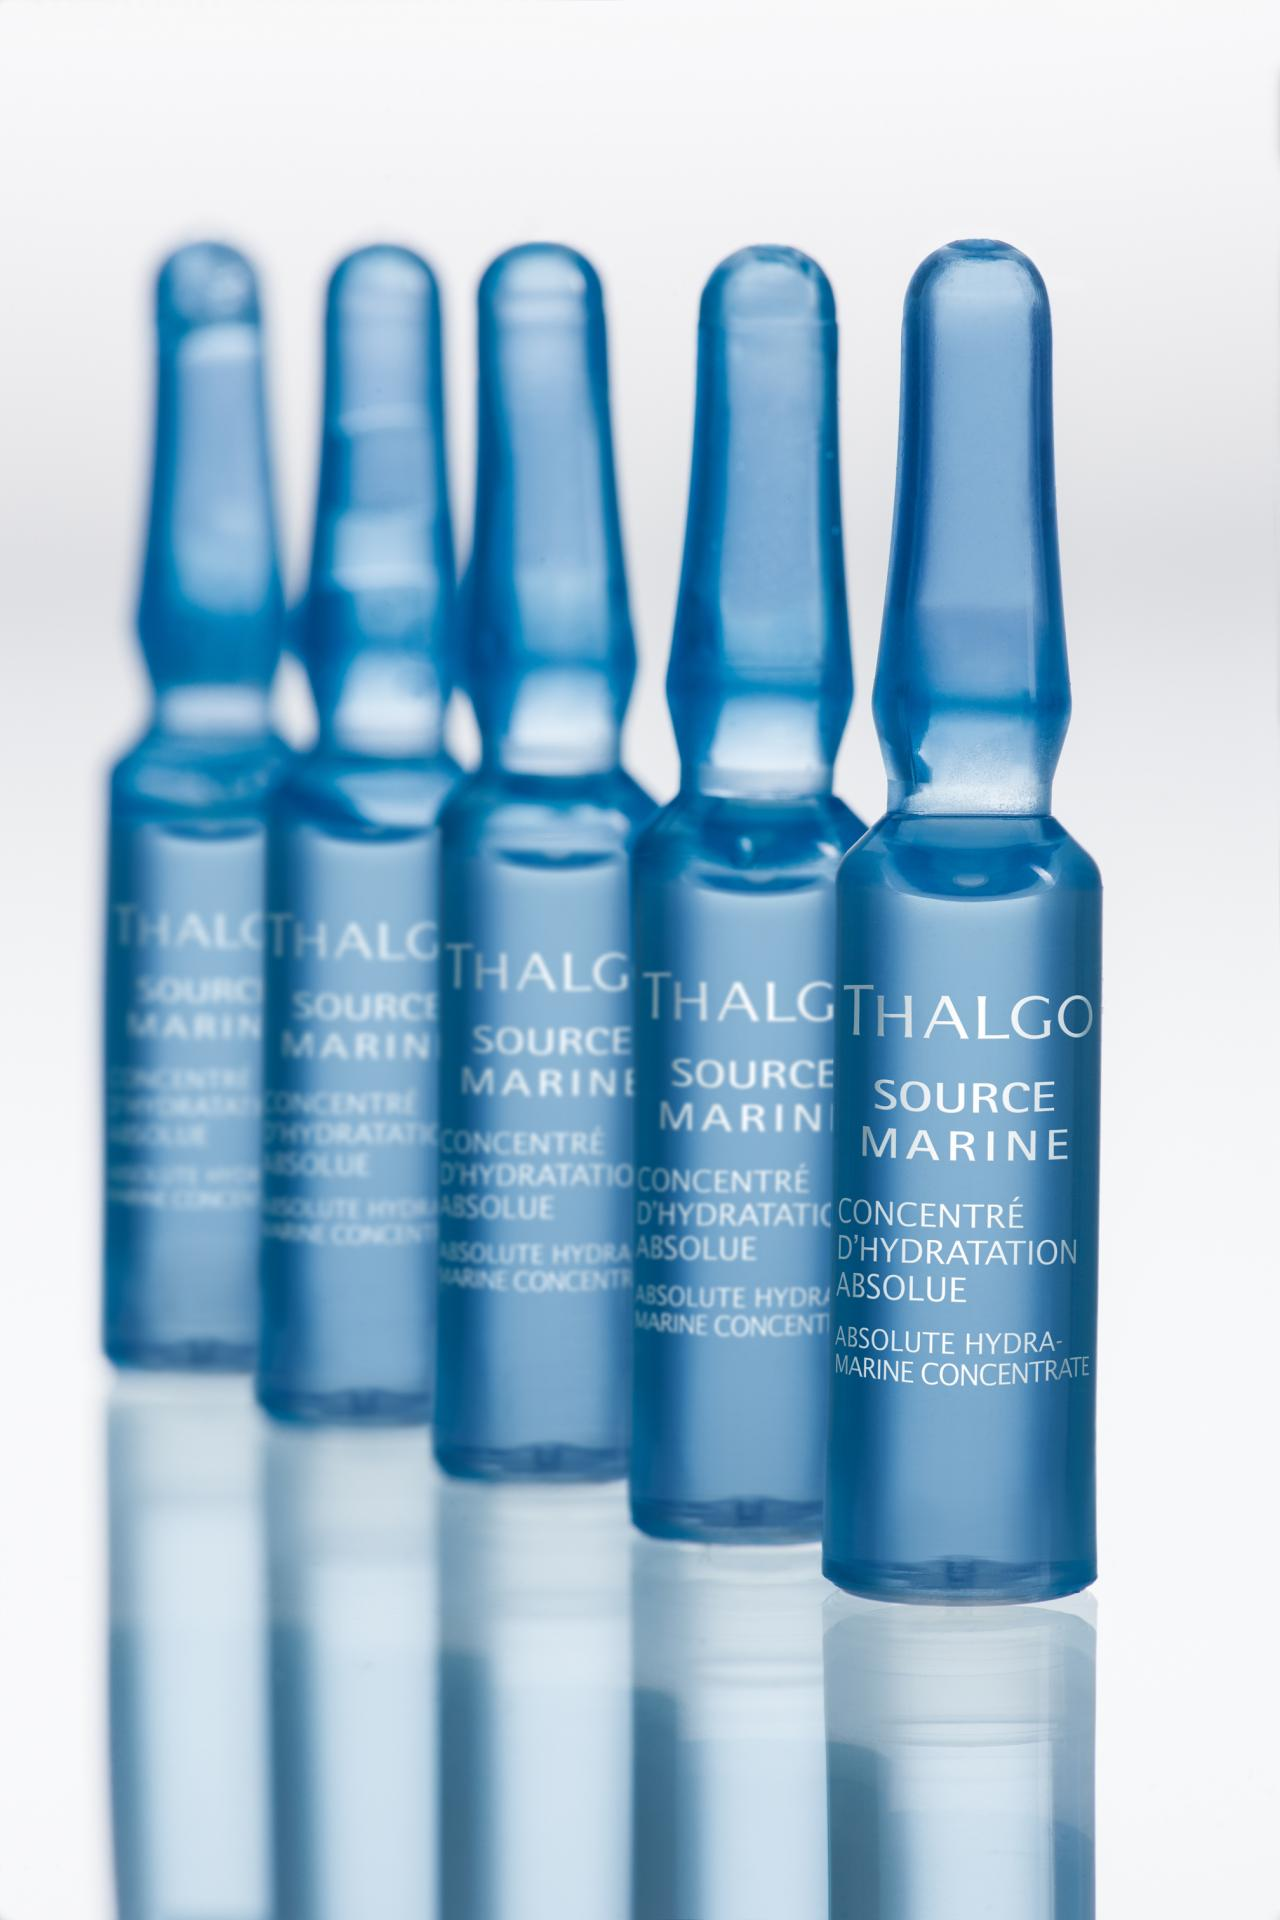 Concentre d hydratation absolu